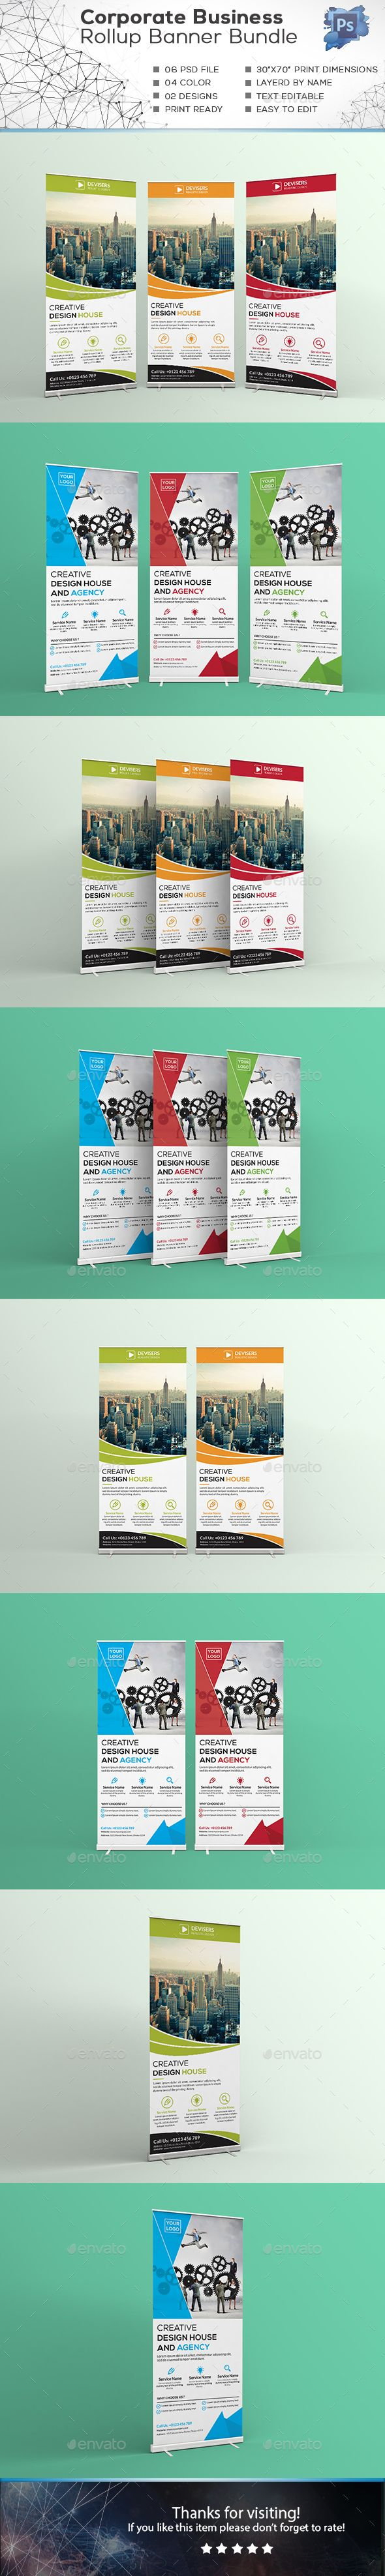 Corporate Business Roll-up Banner Design Bundle - Signage Print Template PSD. Do...